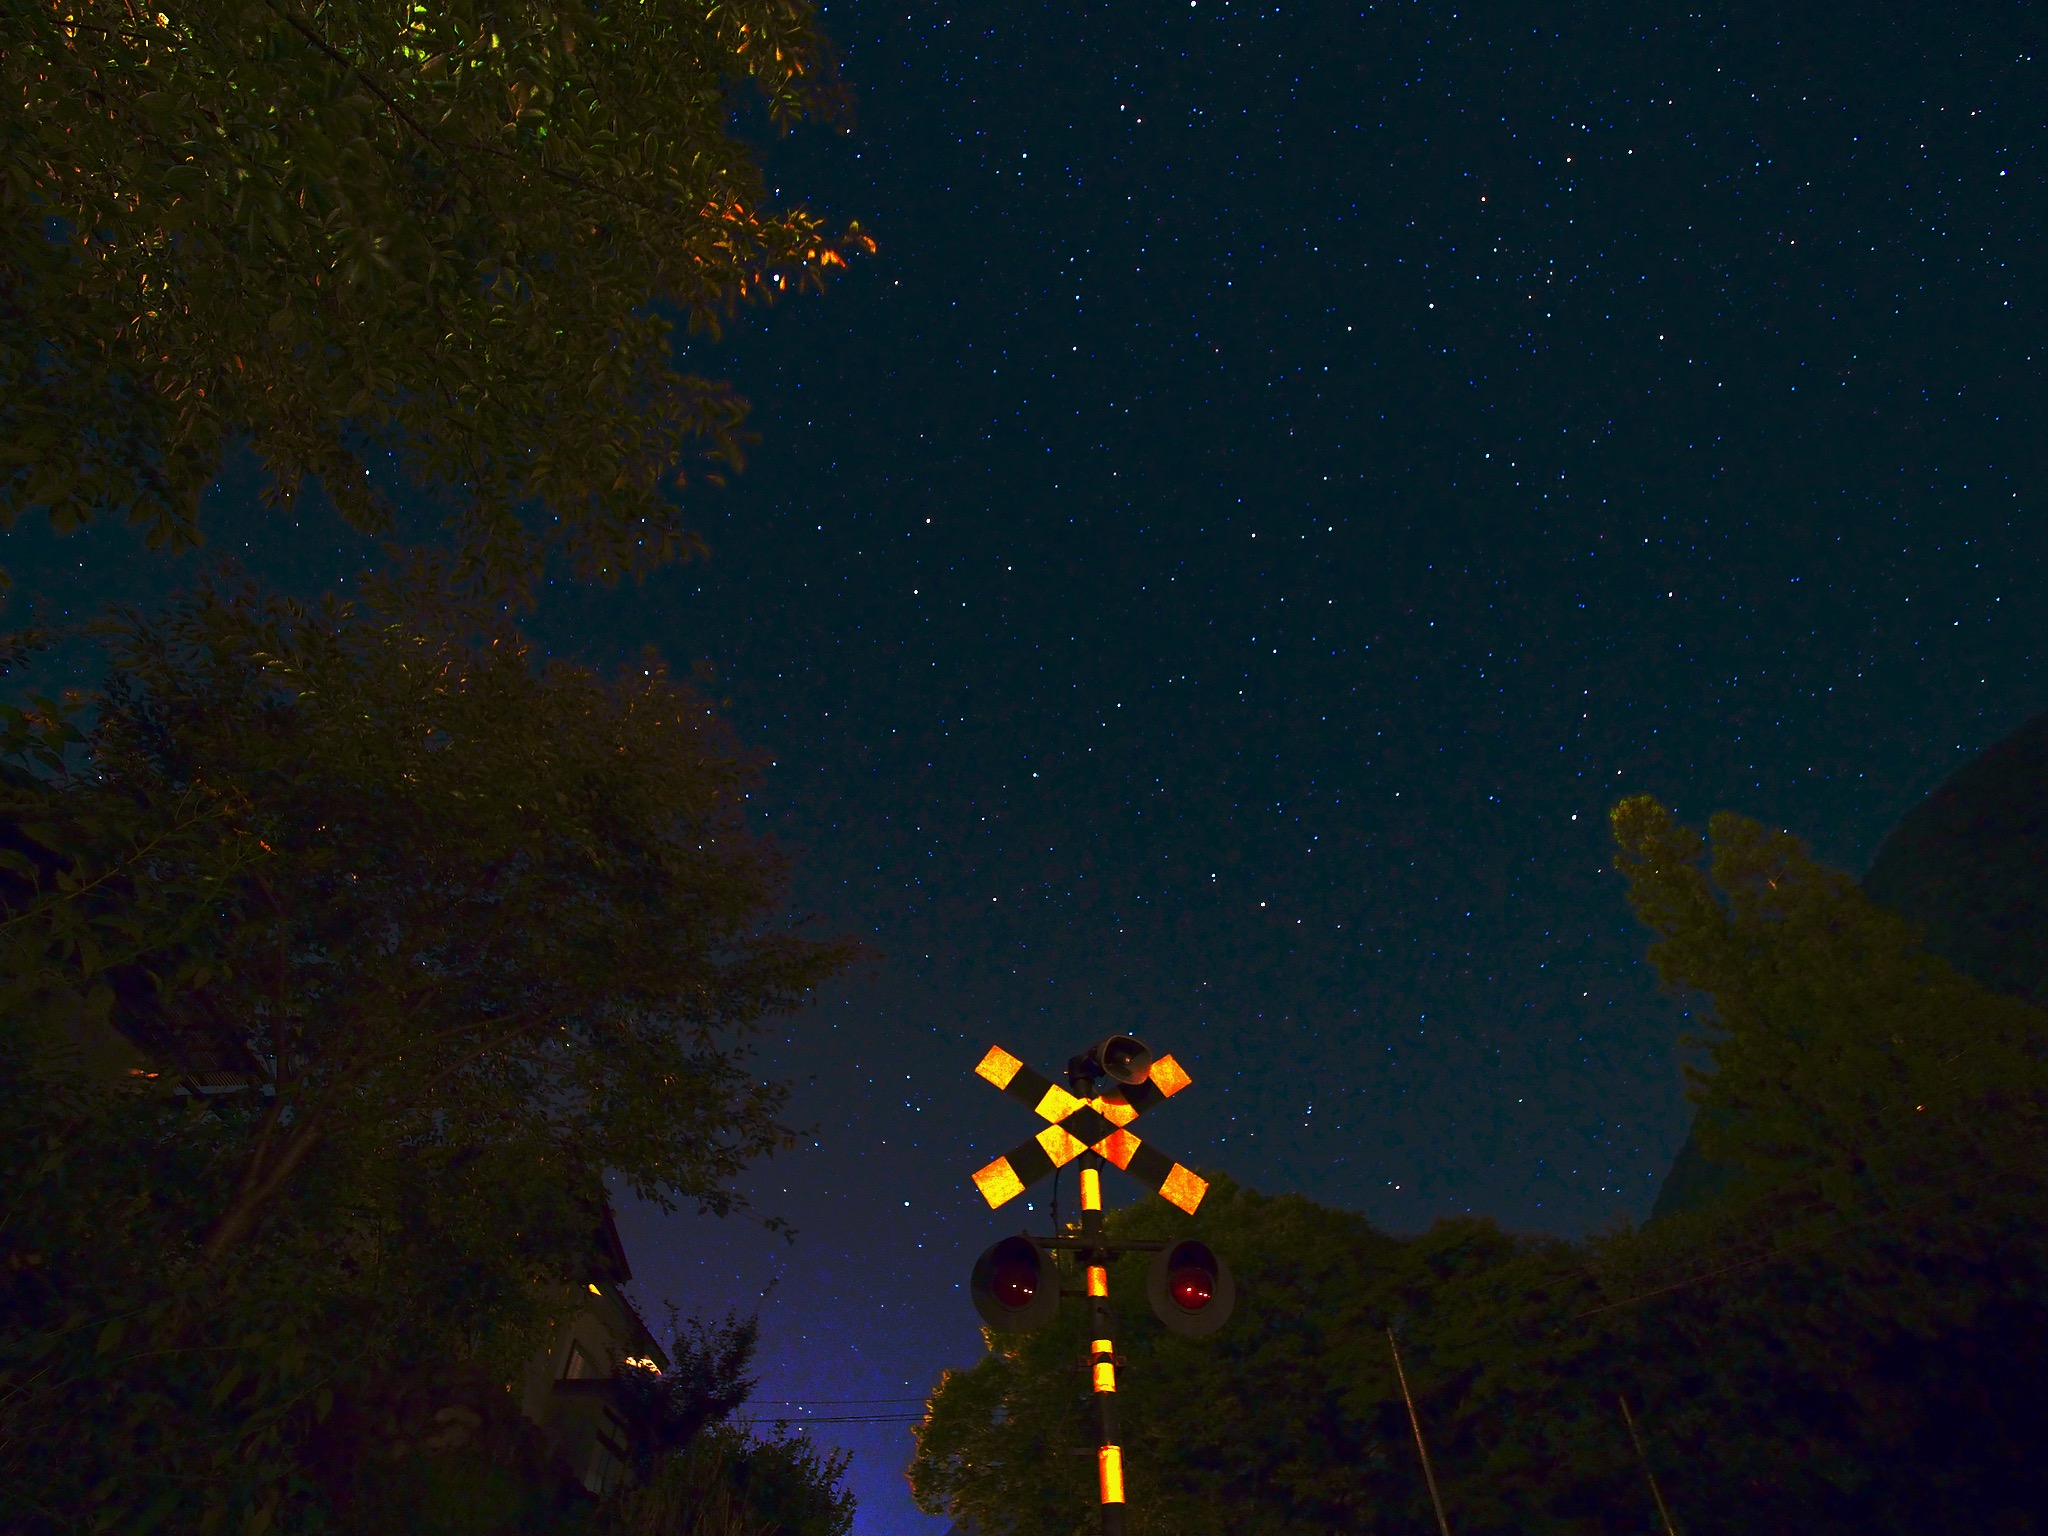 Stars and a signal of level crossing